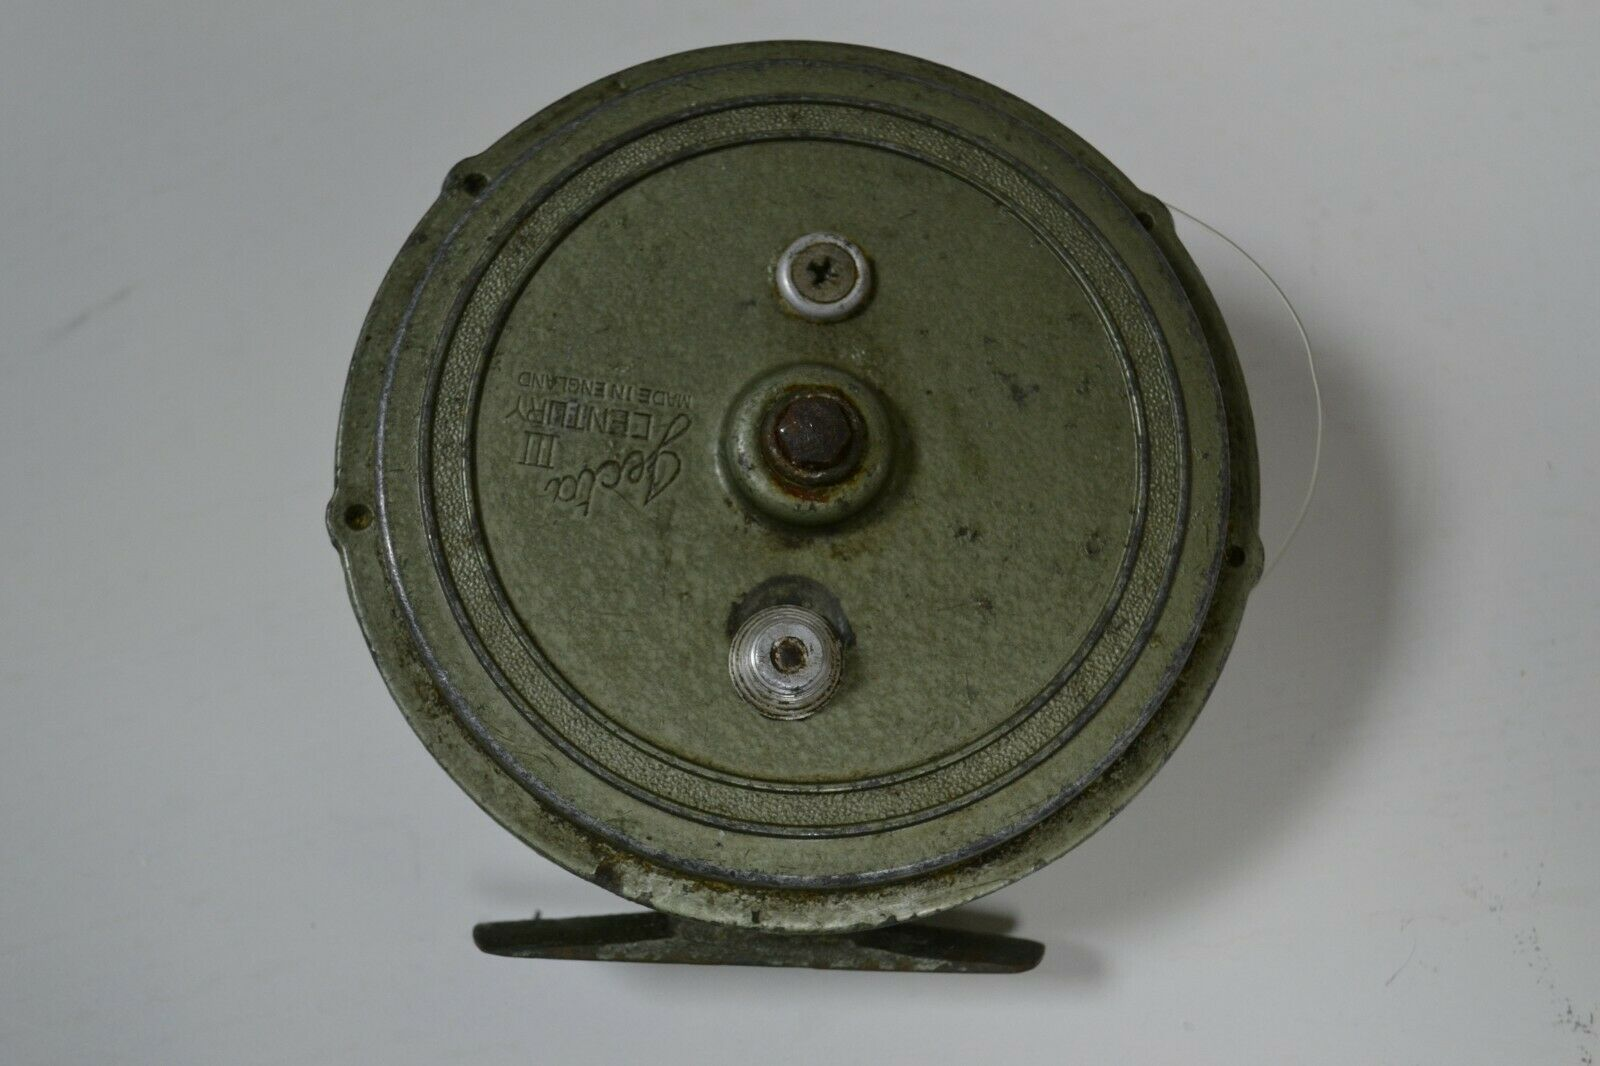 VINTAGE JECTA III CENTURY REEL REPEARE OR SPARE MADE IN ENDLAND